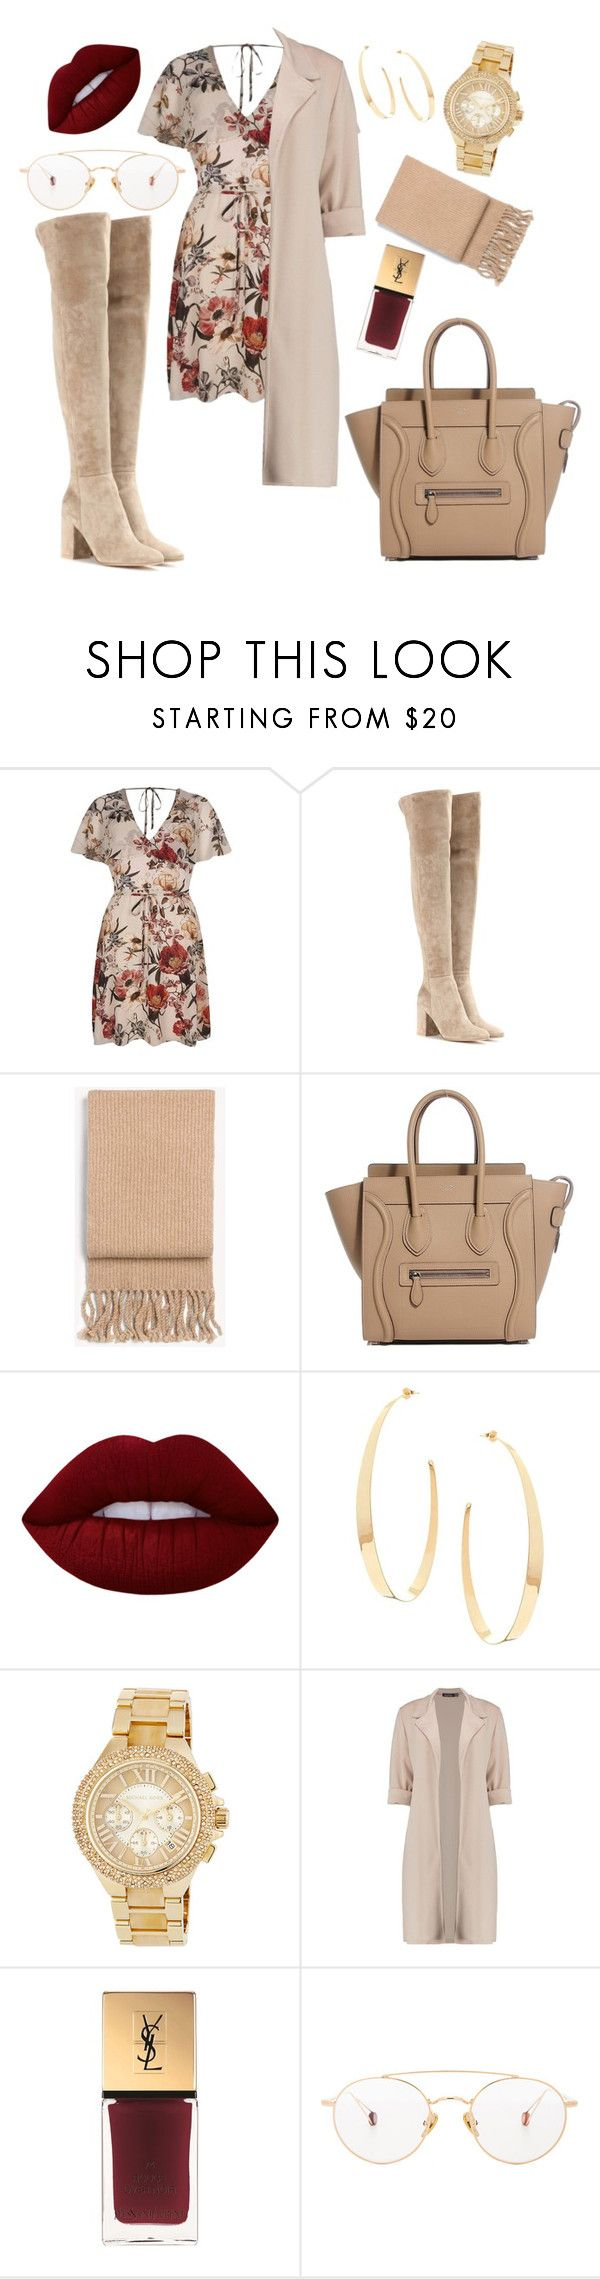 """""""Untitled #438"""" by omgitskaylapope on Polyvore featuring River Island, Gianvito Rossi, rag & bone, Lime Crime, Lana, MICHAEL Michael Kors, Yves Saint Laurent and Ahlem"""